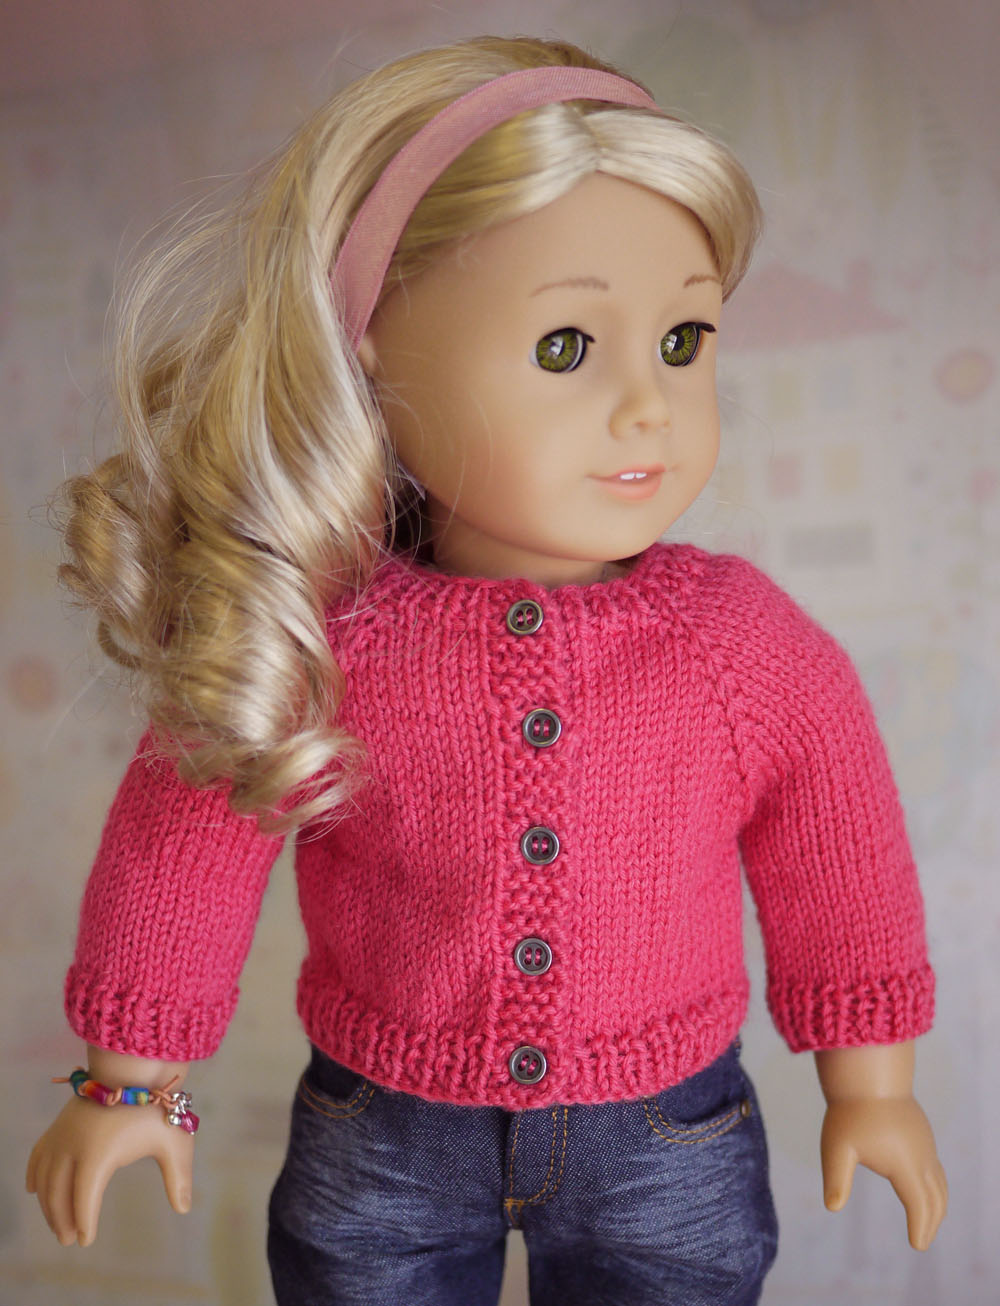 Free Knitting Patterns For 18 Dolls : American Girl Doll Cardigan Sweater Knitting Pattern Cindy Rice Designs